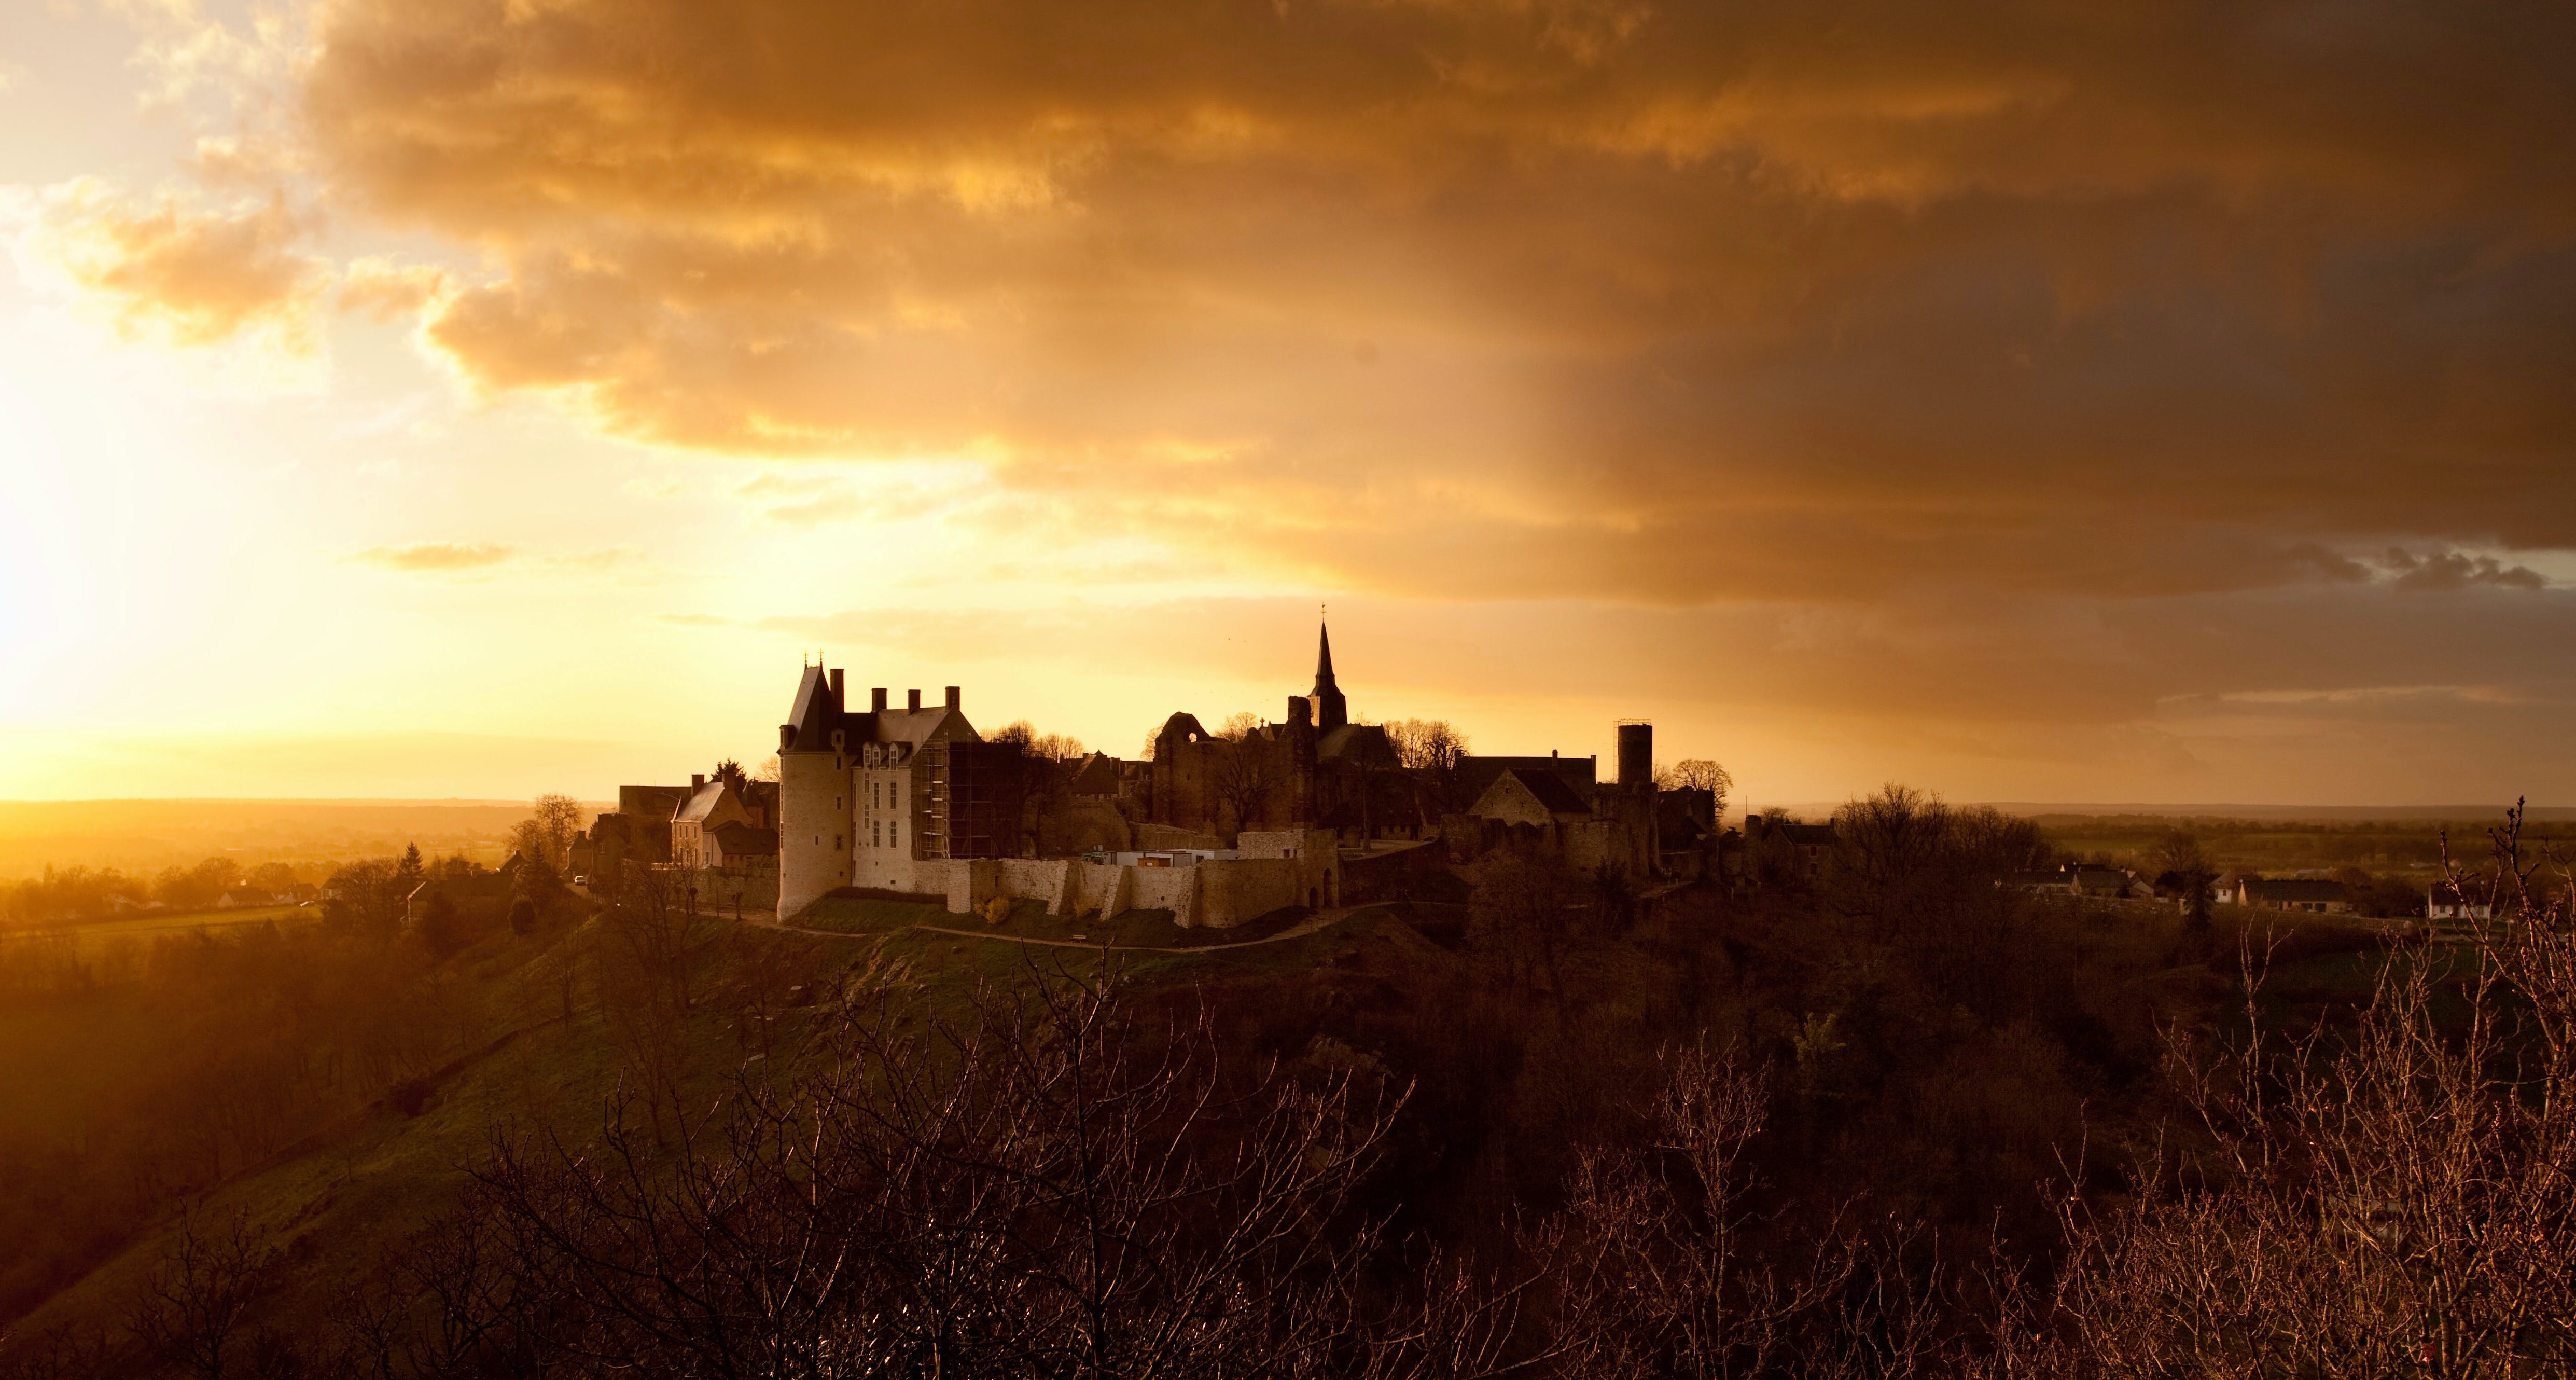 Castle on Top of Hill at Sunset